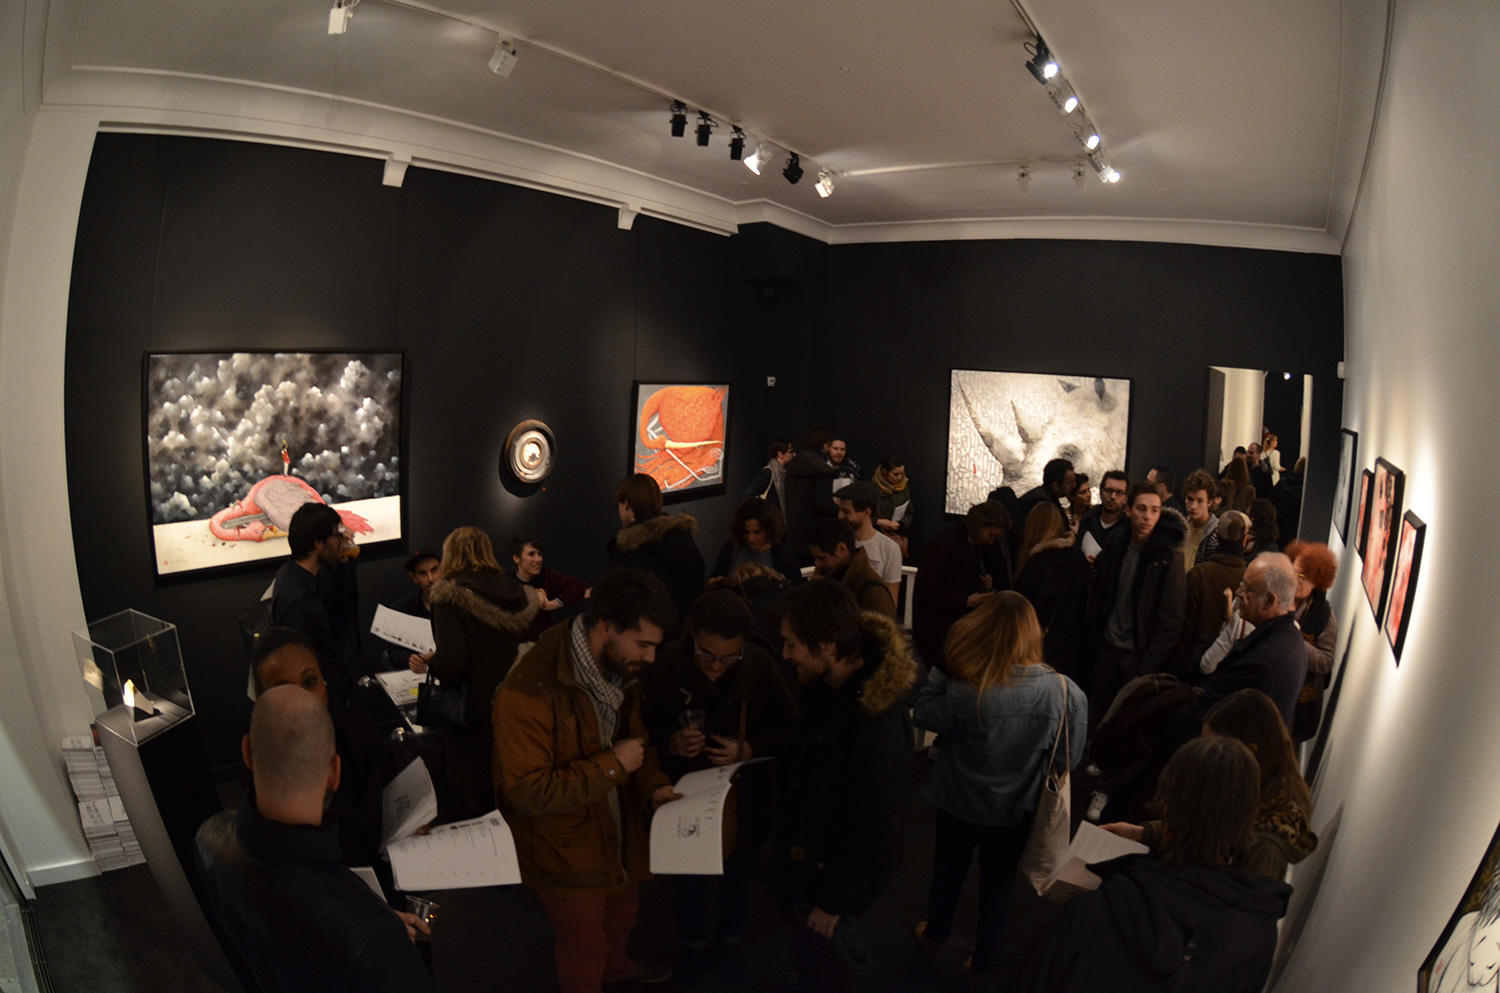 Ella_Pitr_exposition_See_You_Soon_Like_the_Moon_Galerie_LE_FEUVRE_Paris_Solo_show_toile_artwork_dessin1